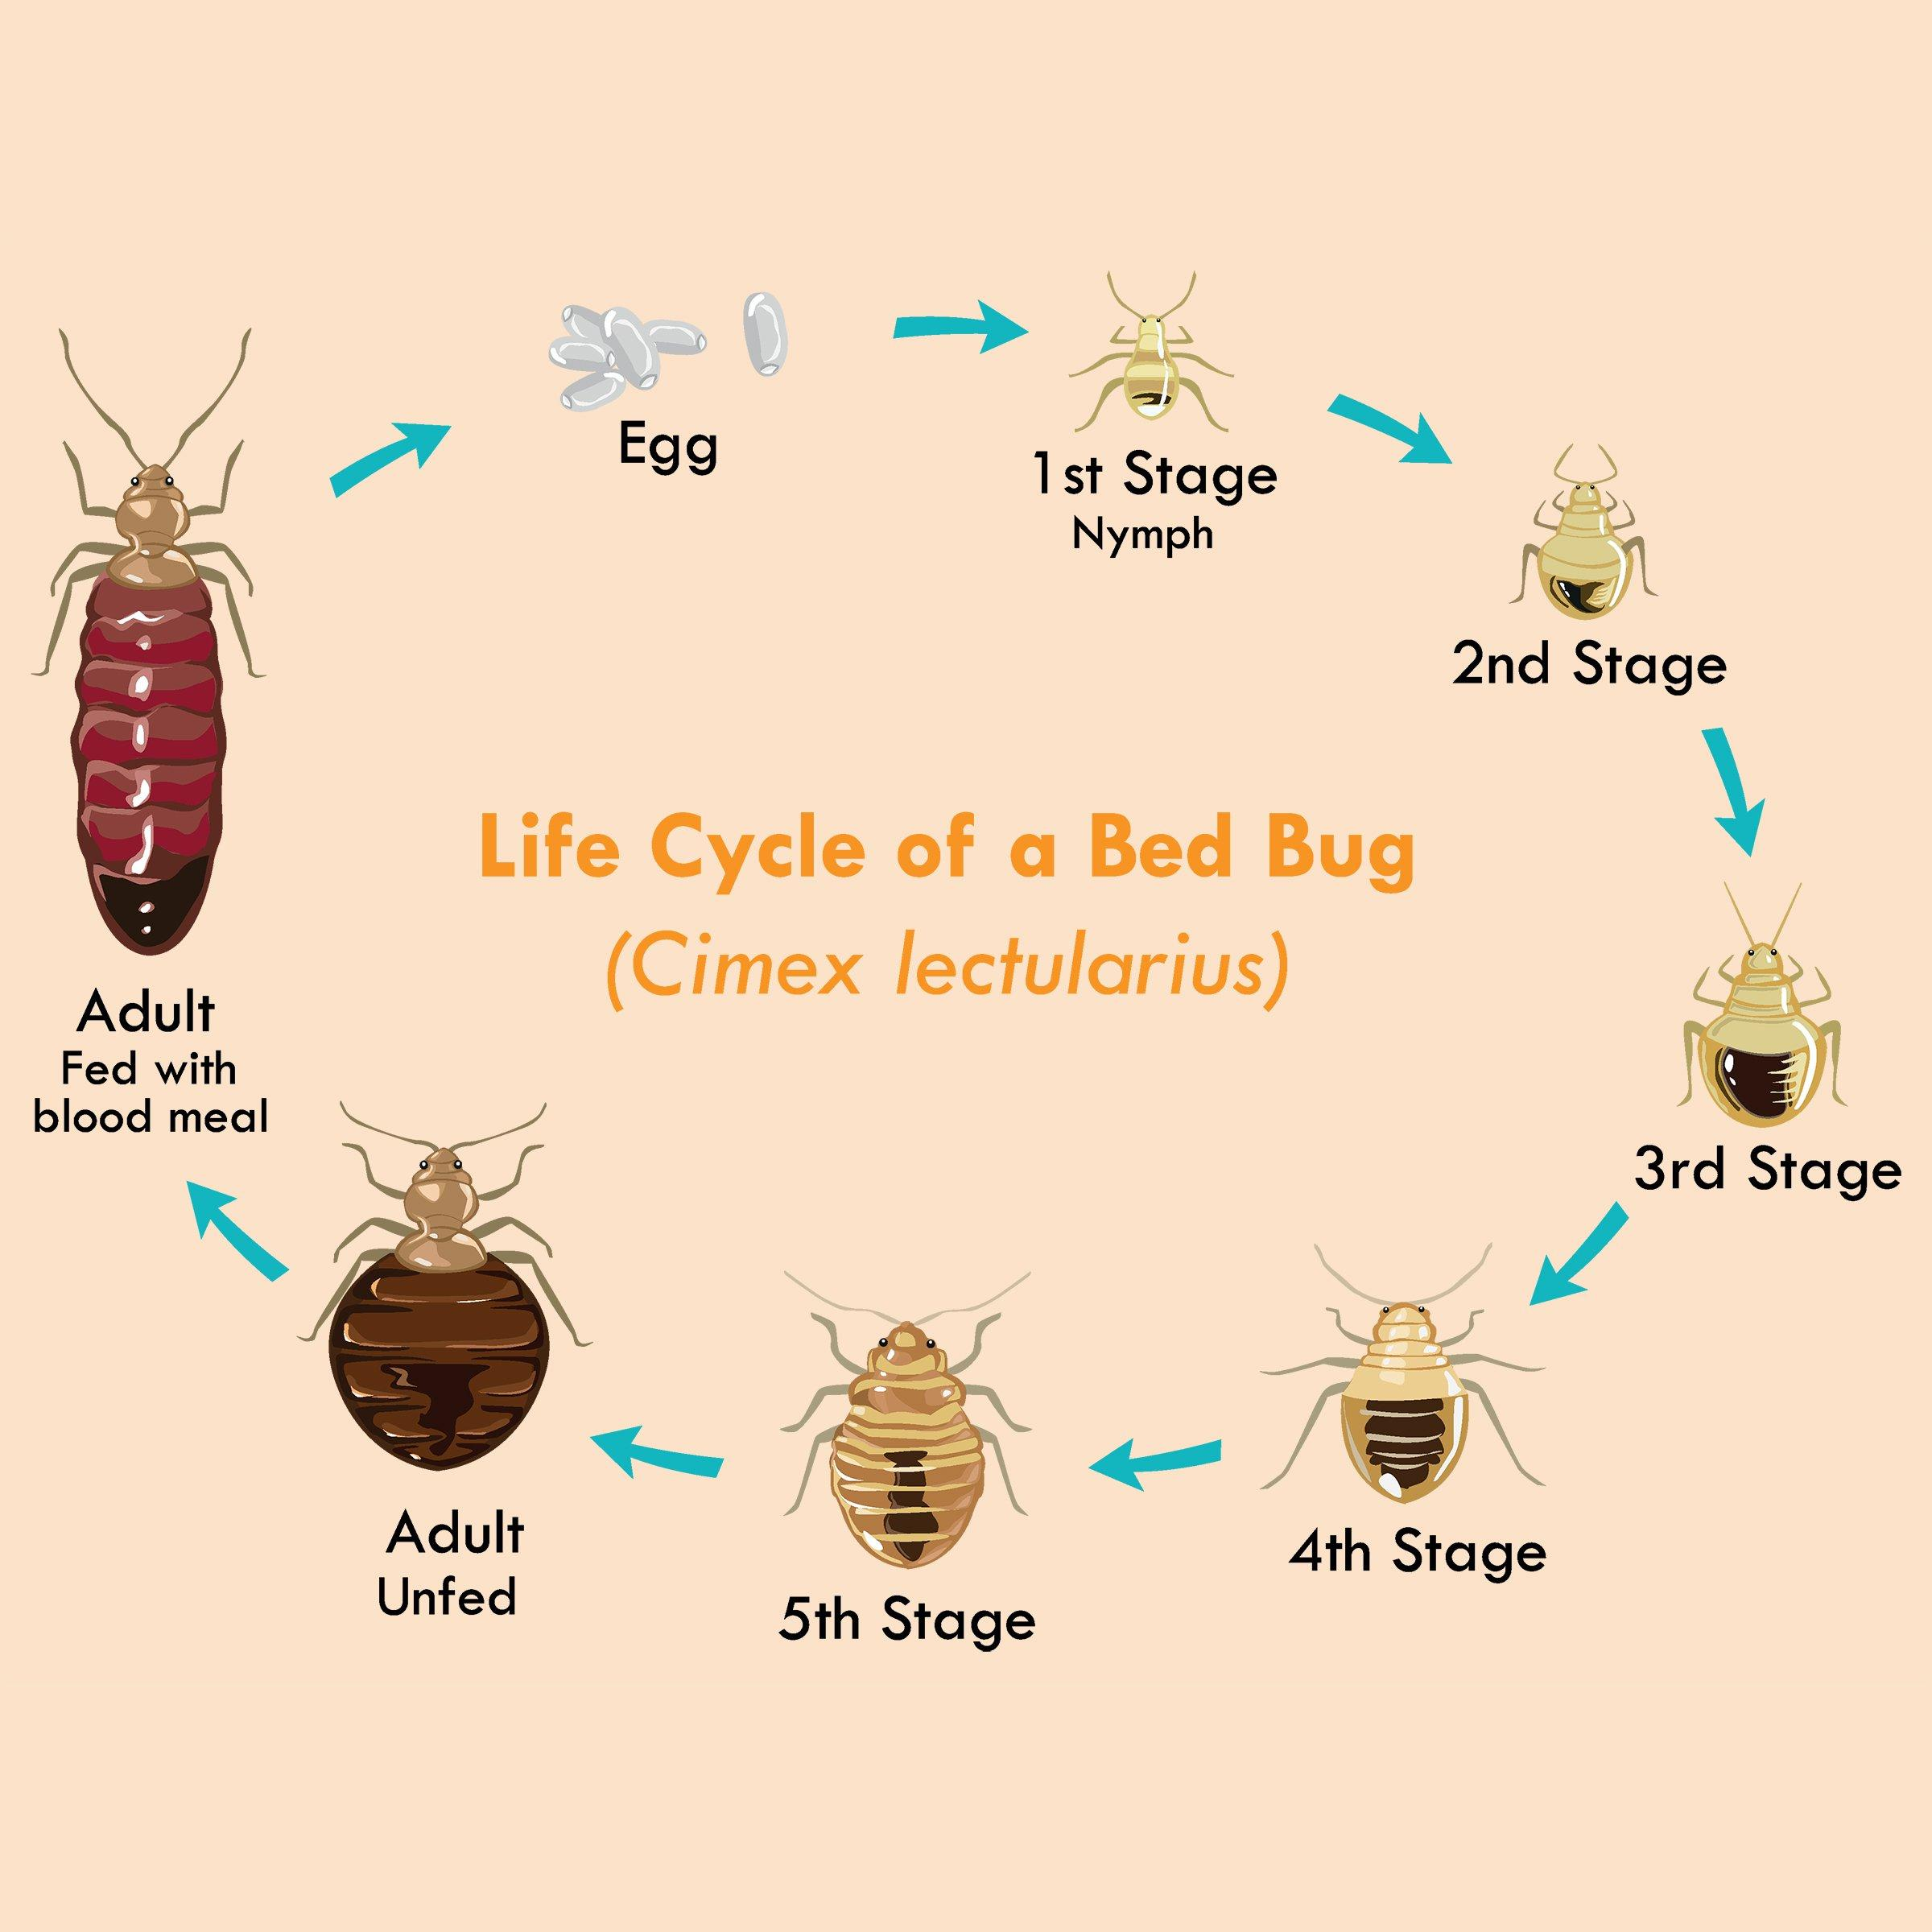 What Is The Life Cycle Of A Bed Bug